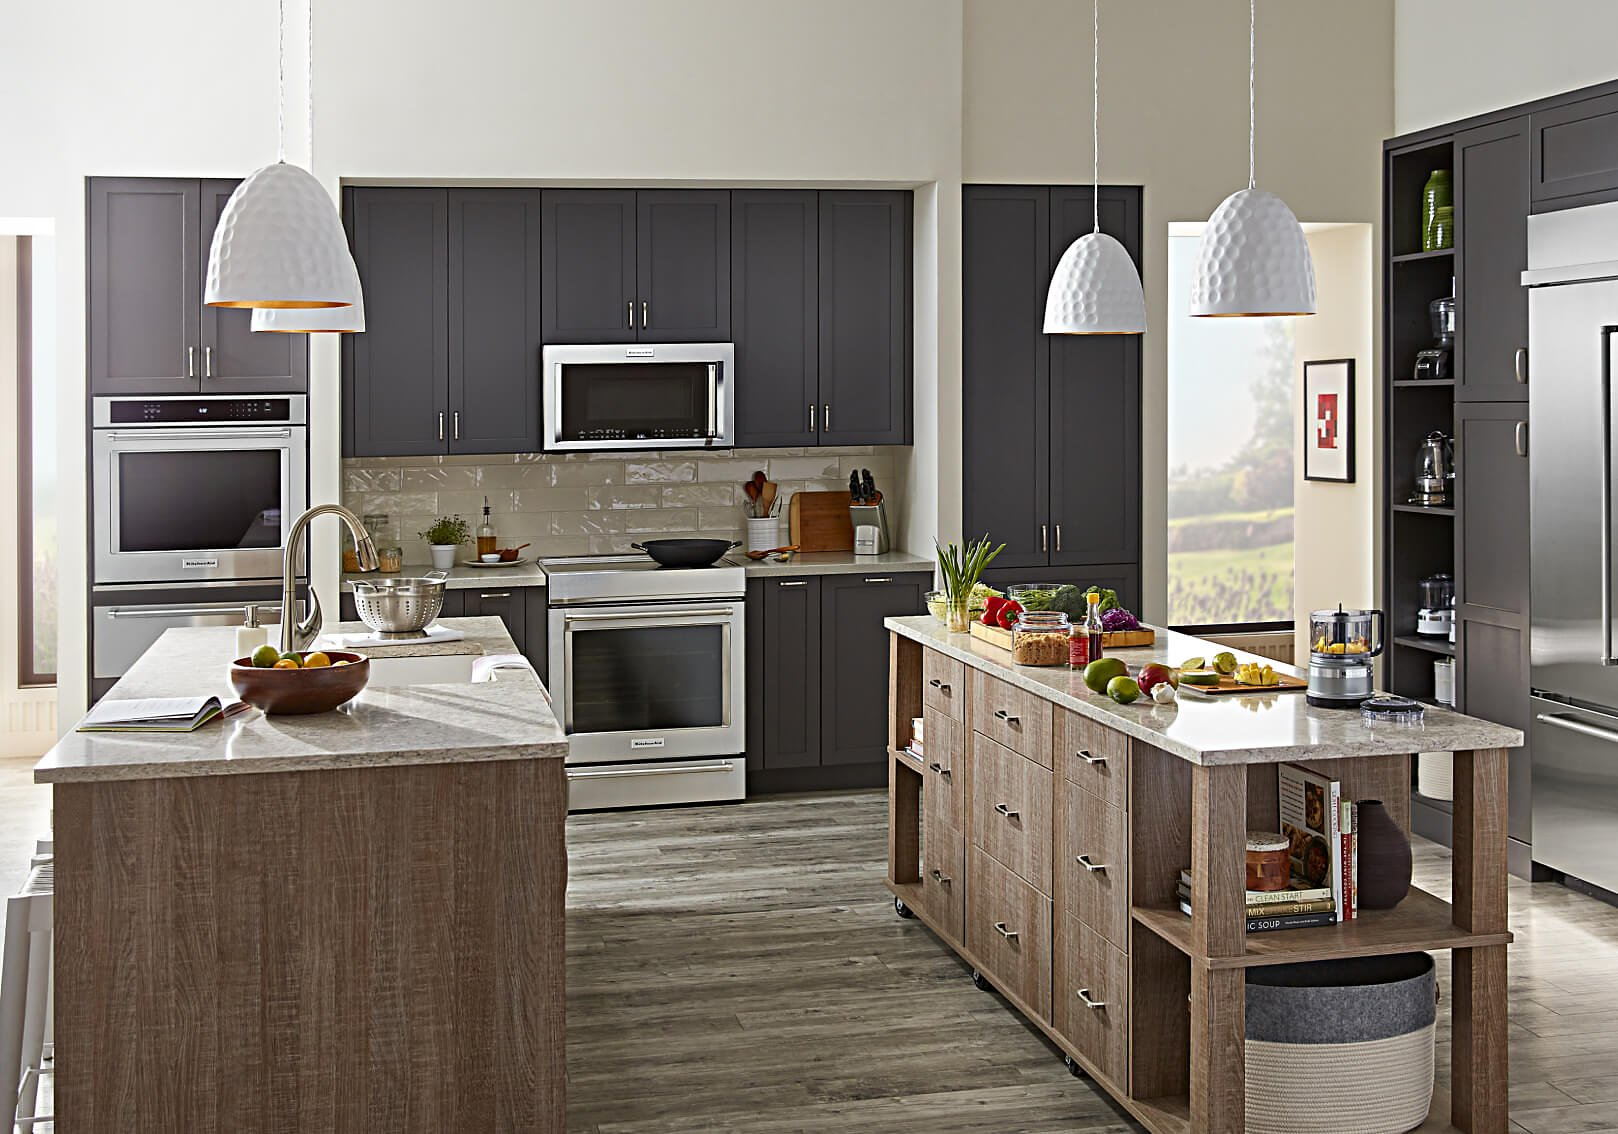 Modern kitchen with grey cabinets, wood paneled island and stainless KitchenAid® appliances.